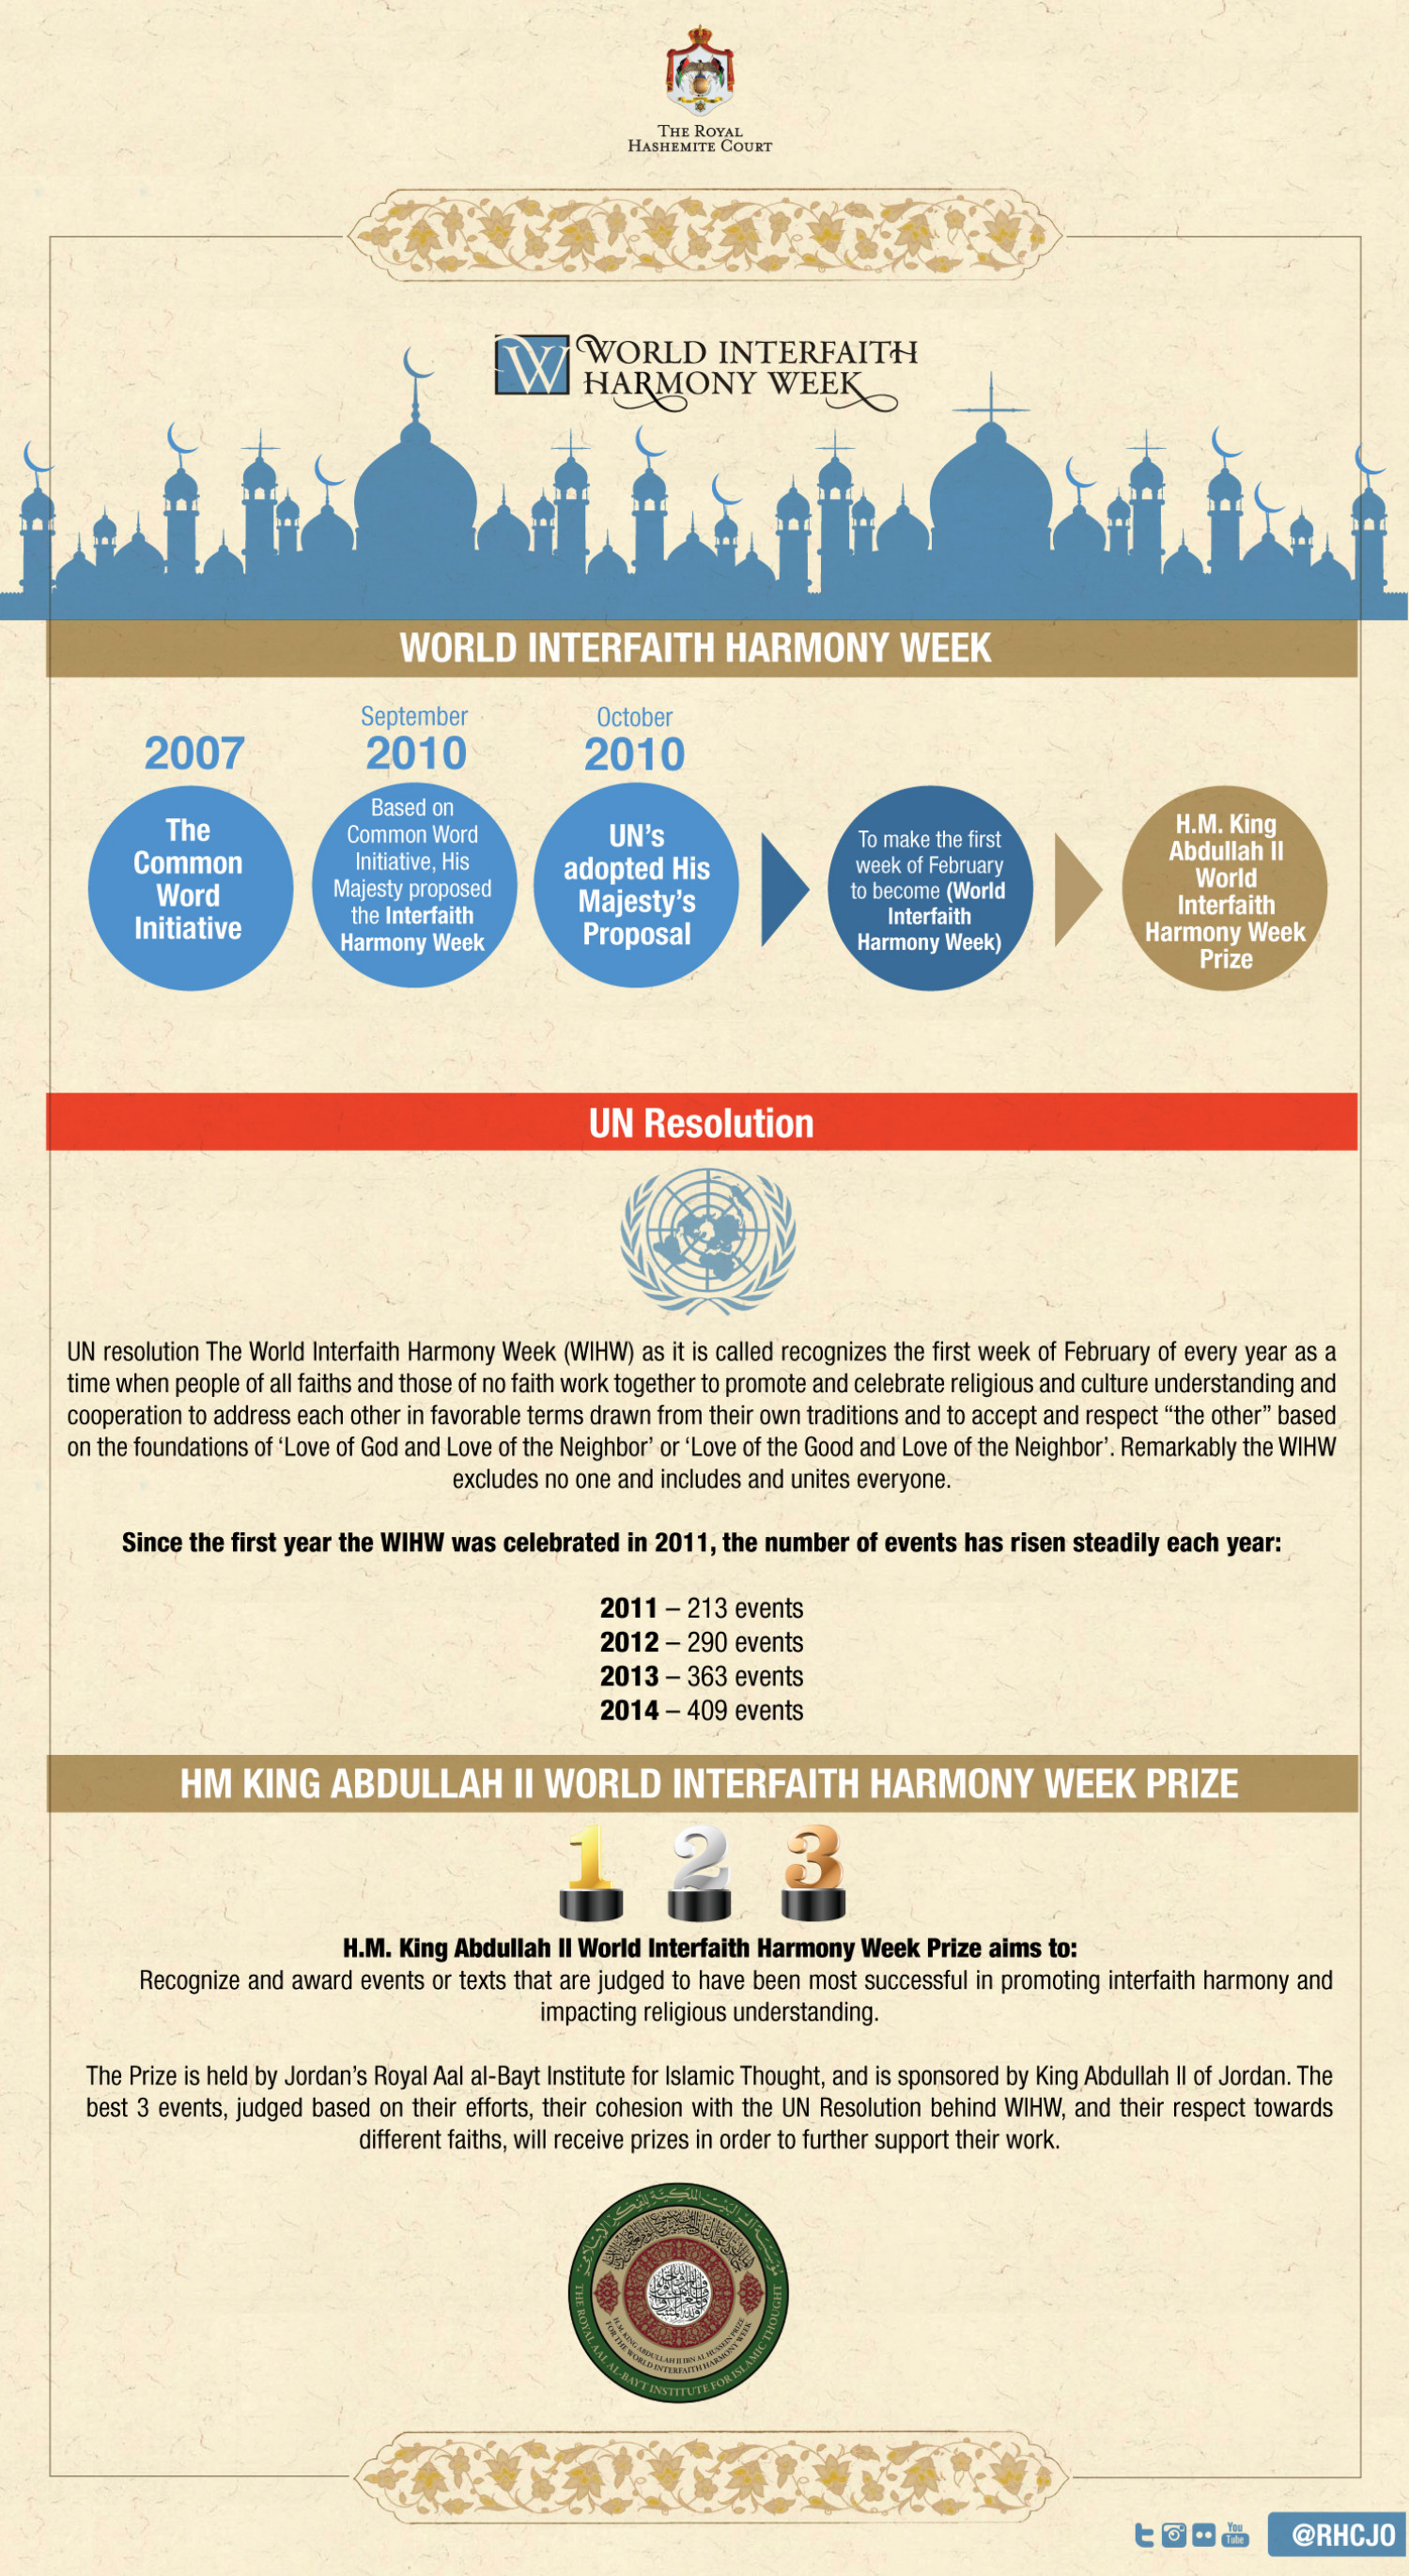 His Majesty King Abdullah II Prize for the World Interfaith Harmony Week Infographic